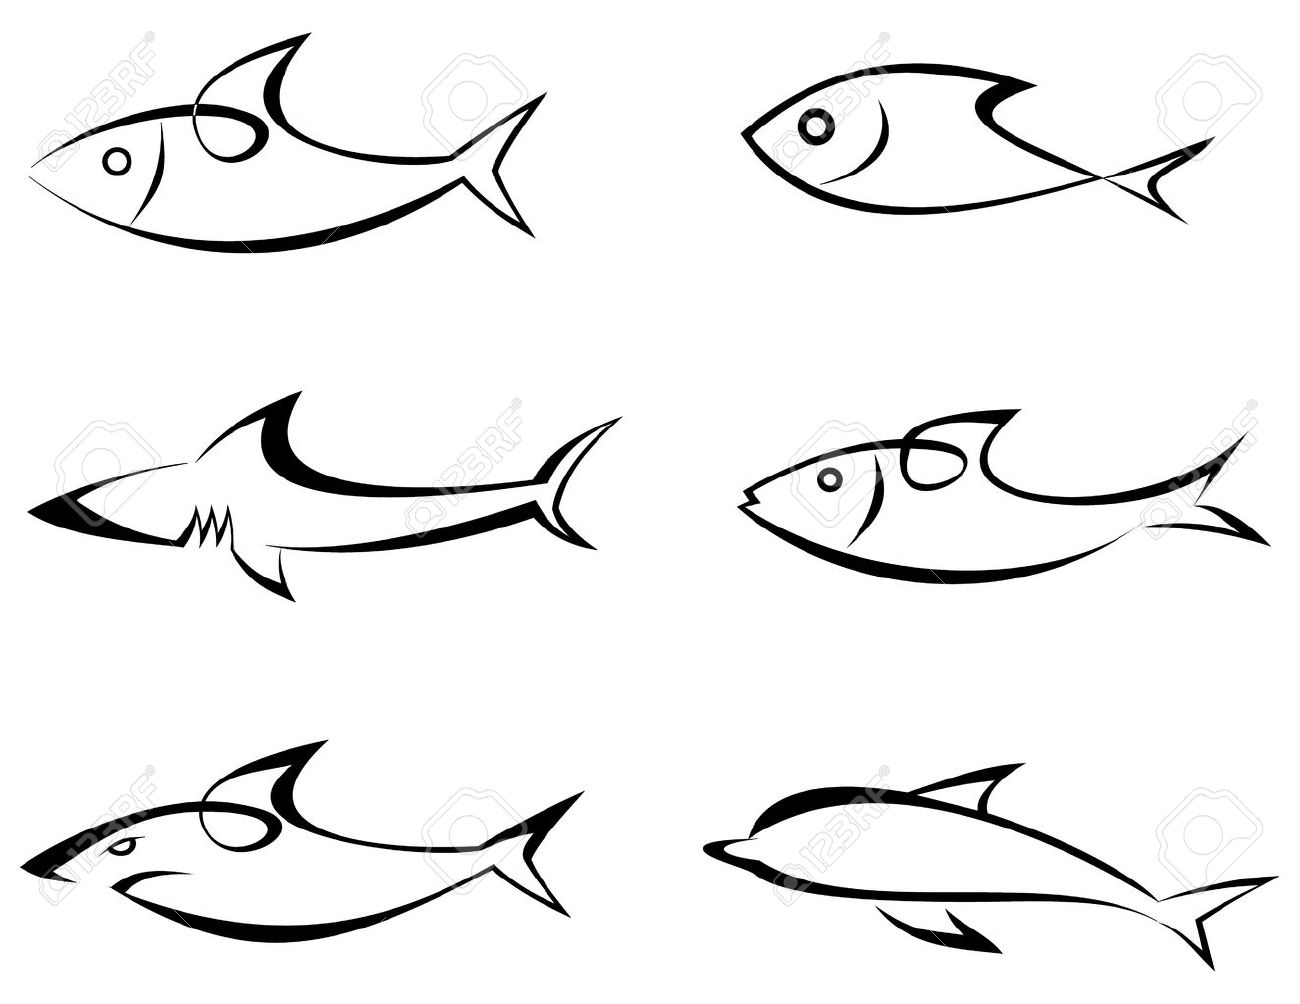 fishes set of outline vector icons stylized image isolated